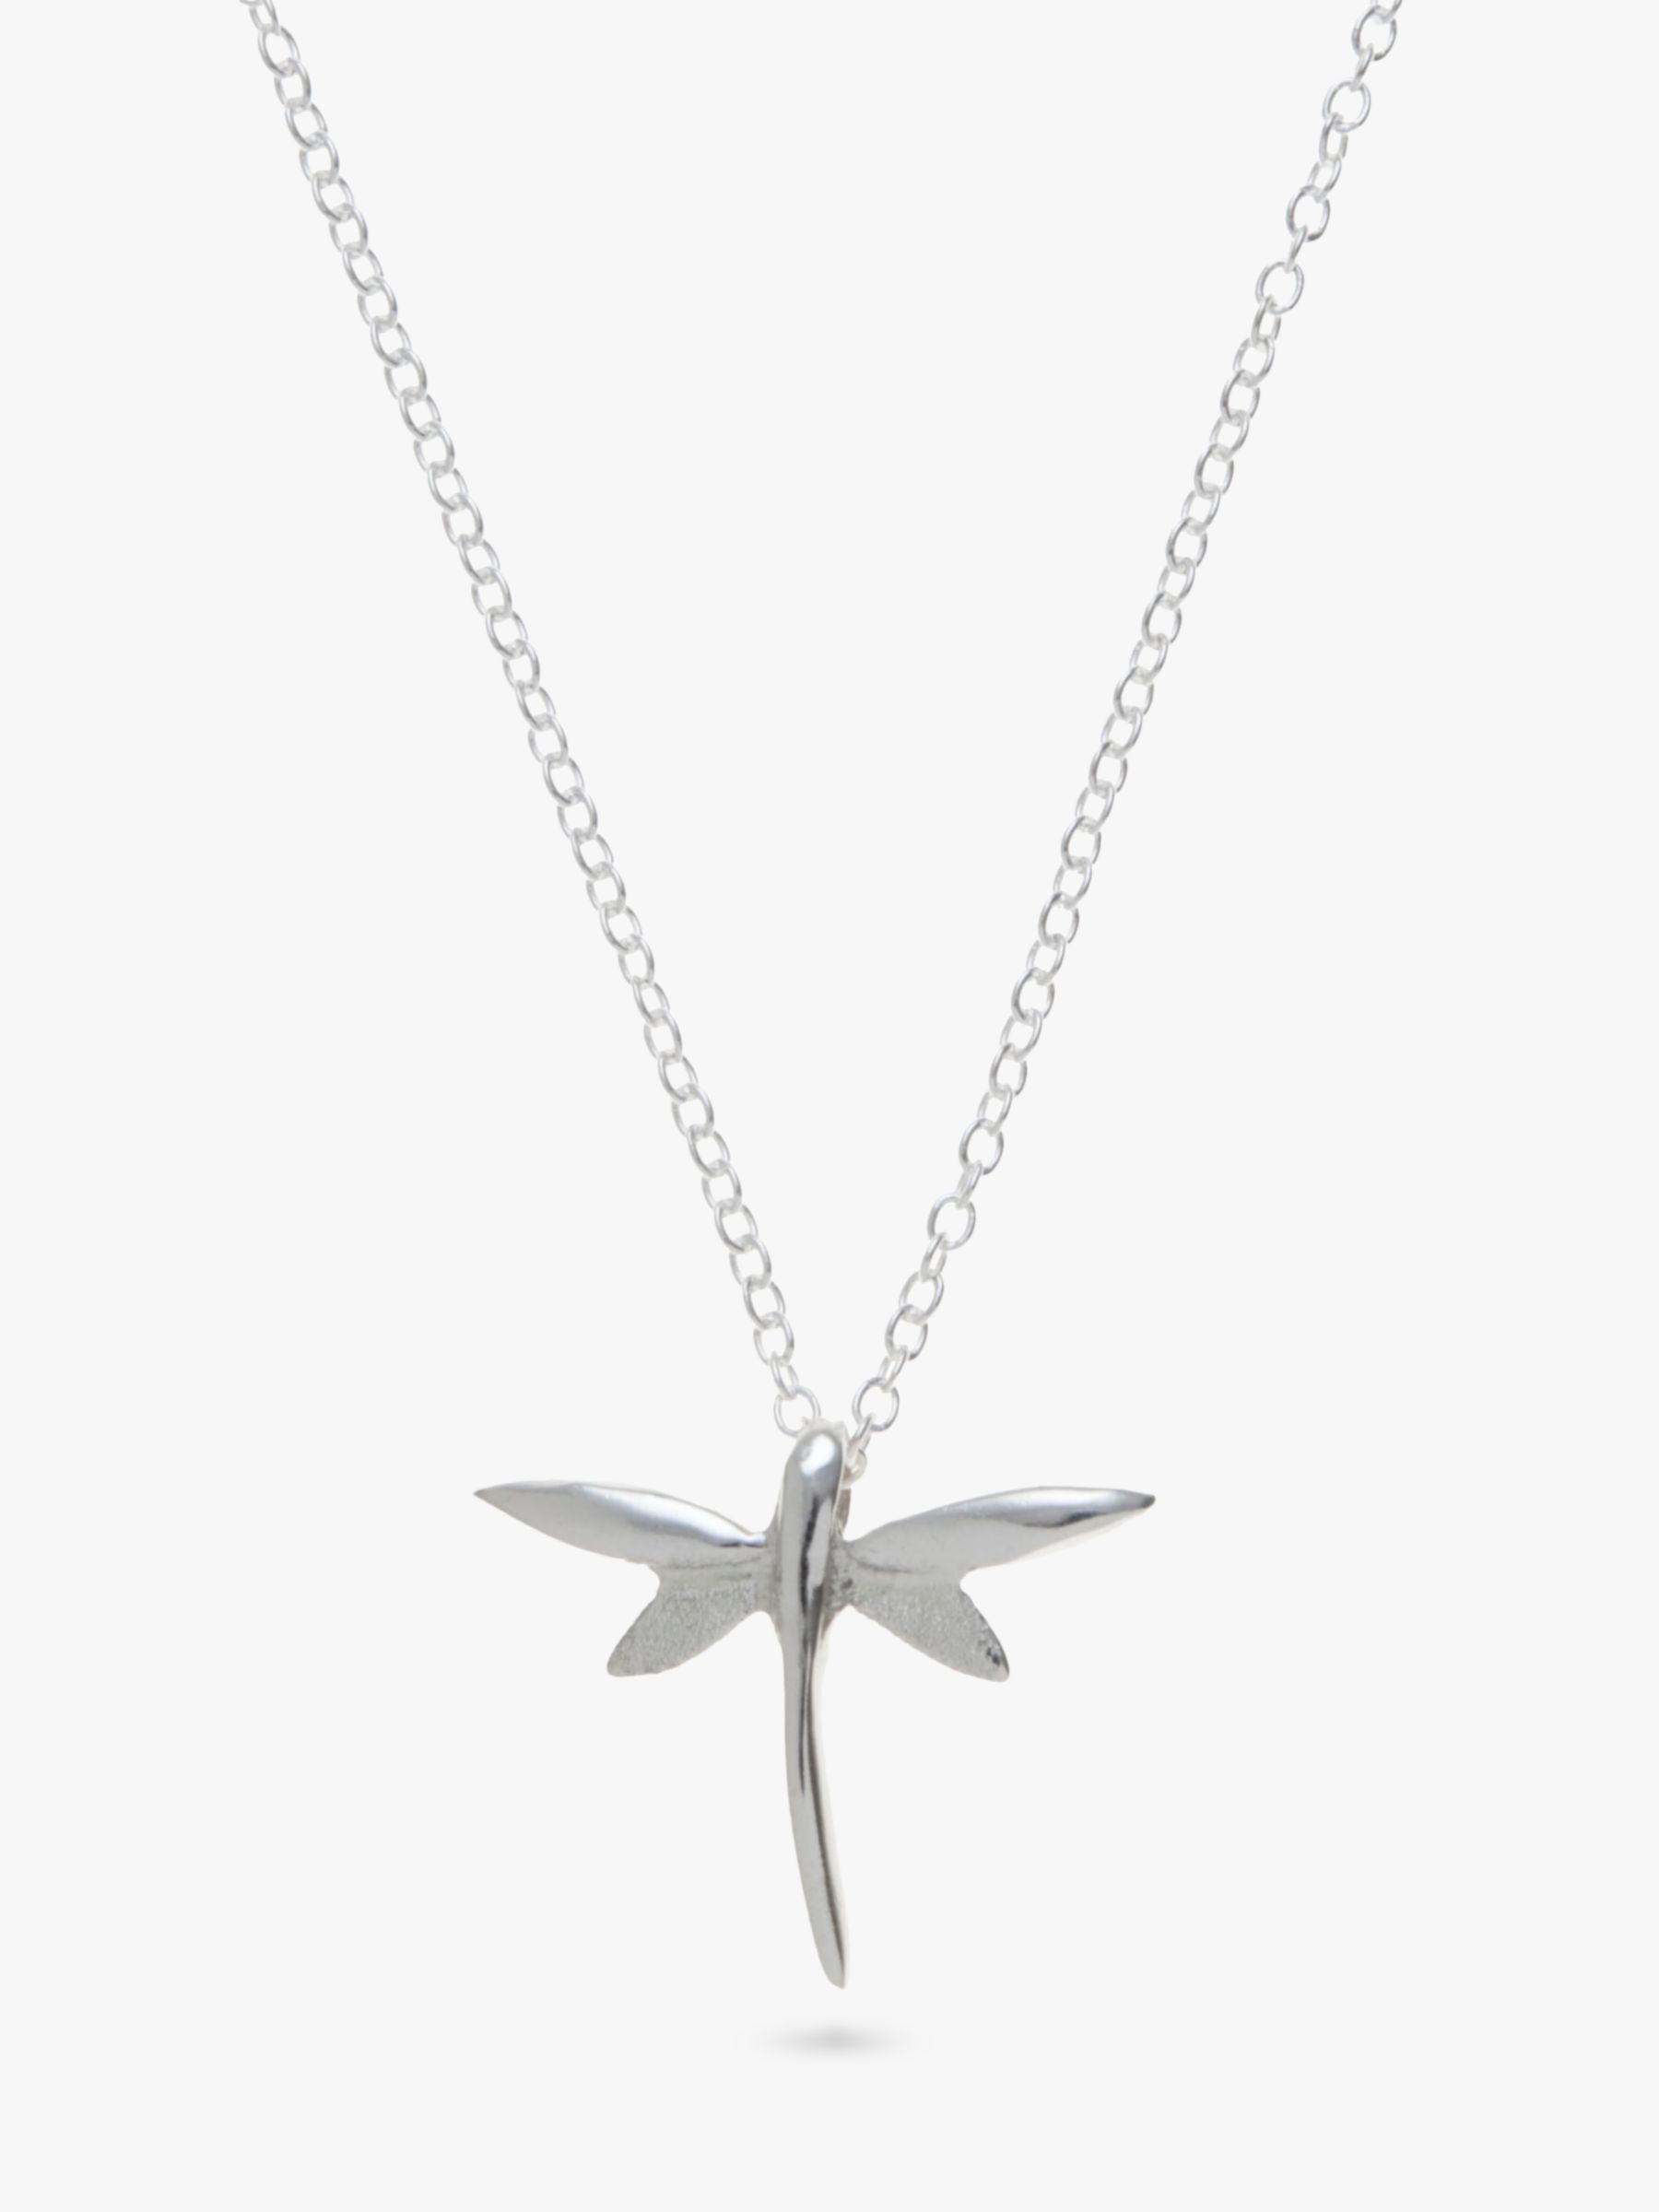 Andea Andea Sterling Silver Dragonfly Pendant Necklace